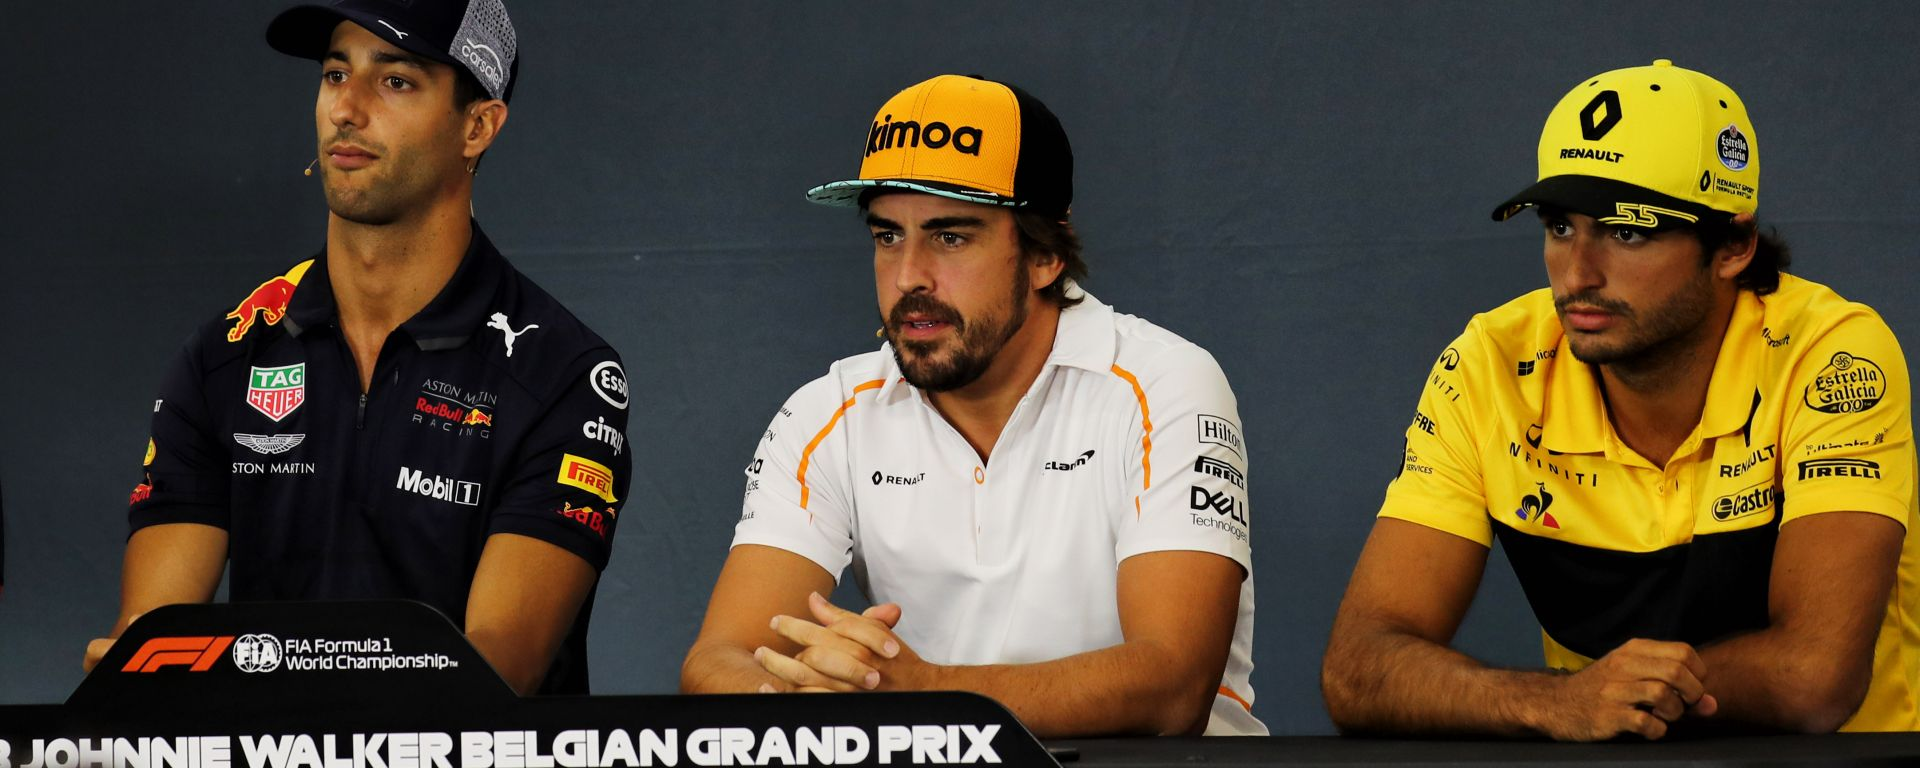 F1 GP Belgio 2018, Spa-Francorchamps: Ricciardo, Alonso e Sainz in conferenza stampa